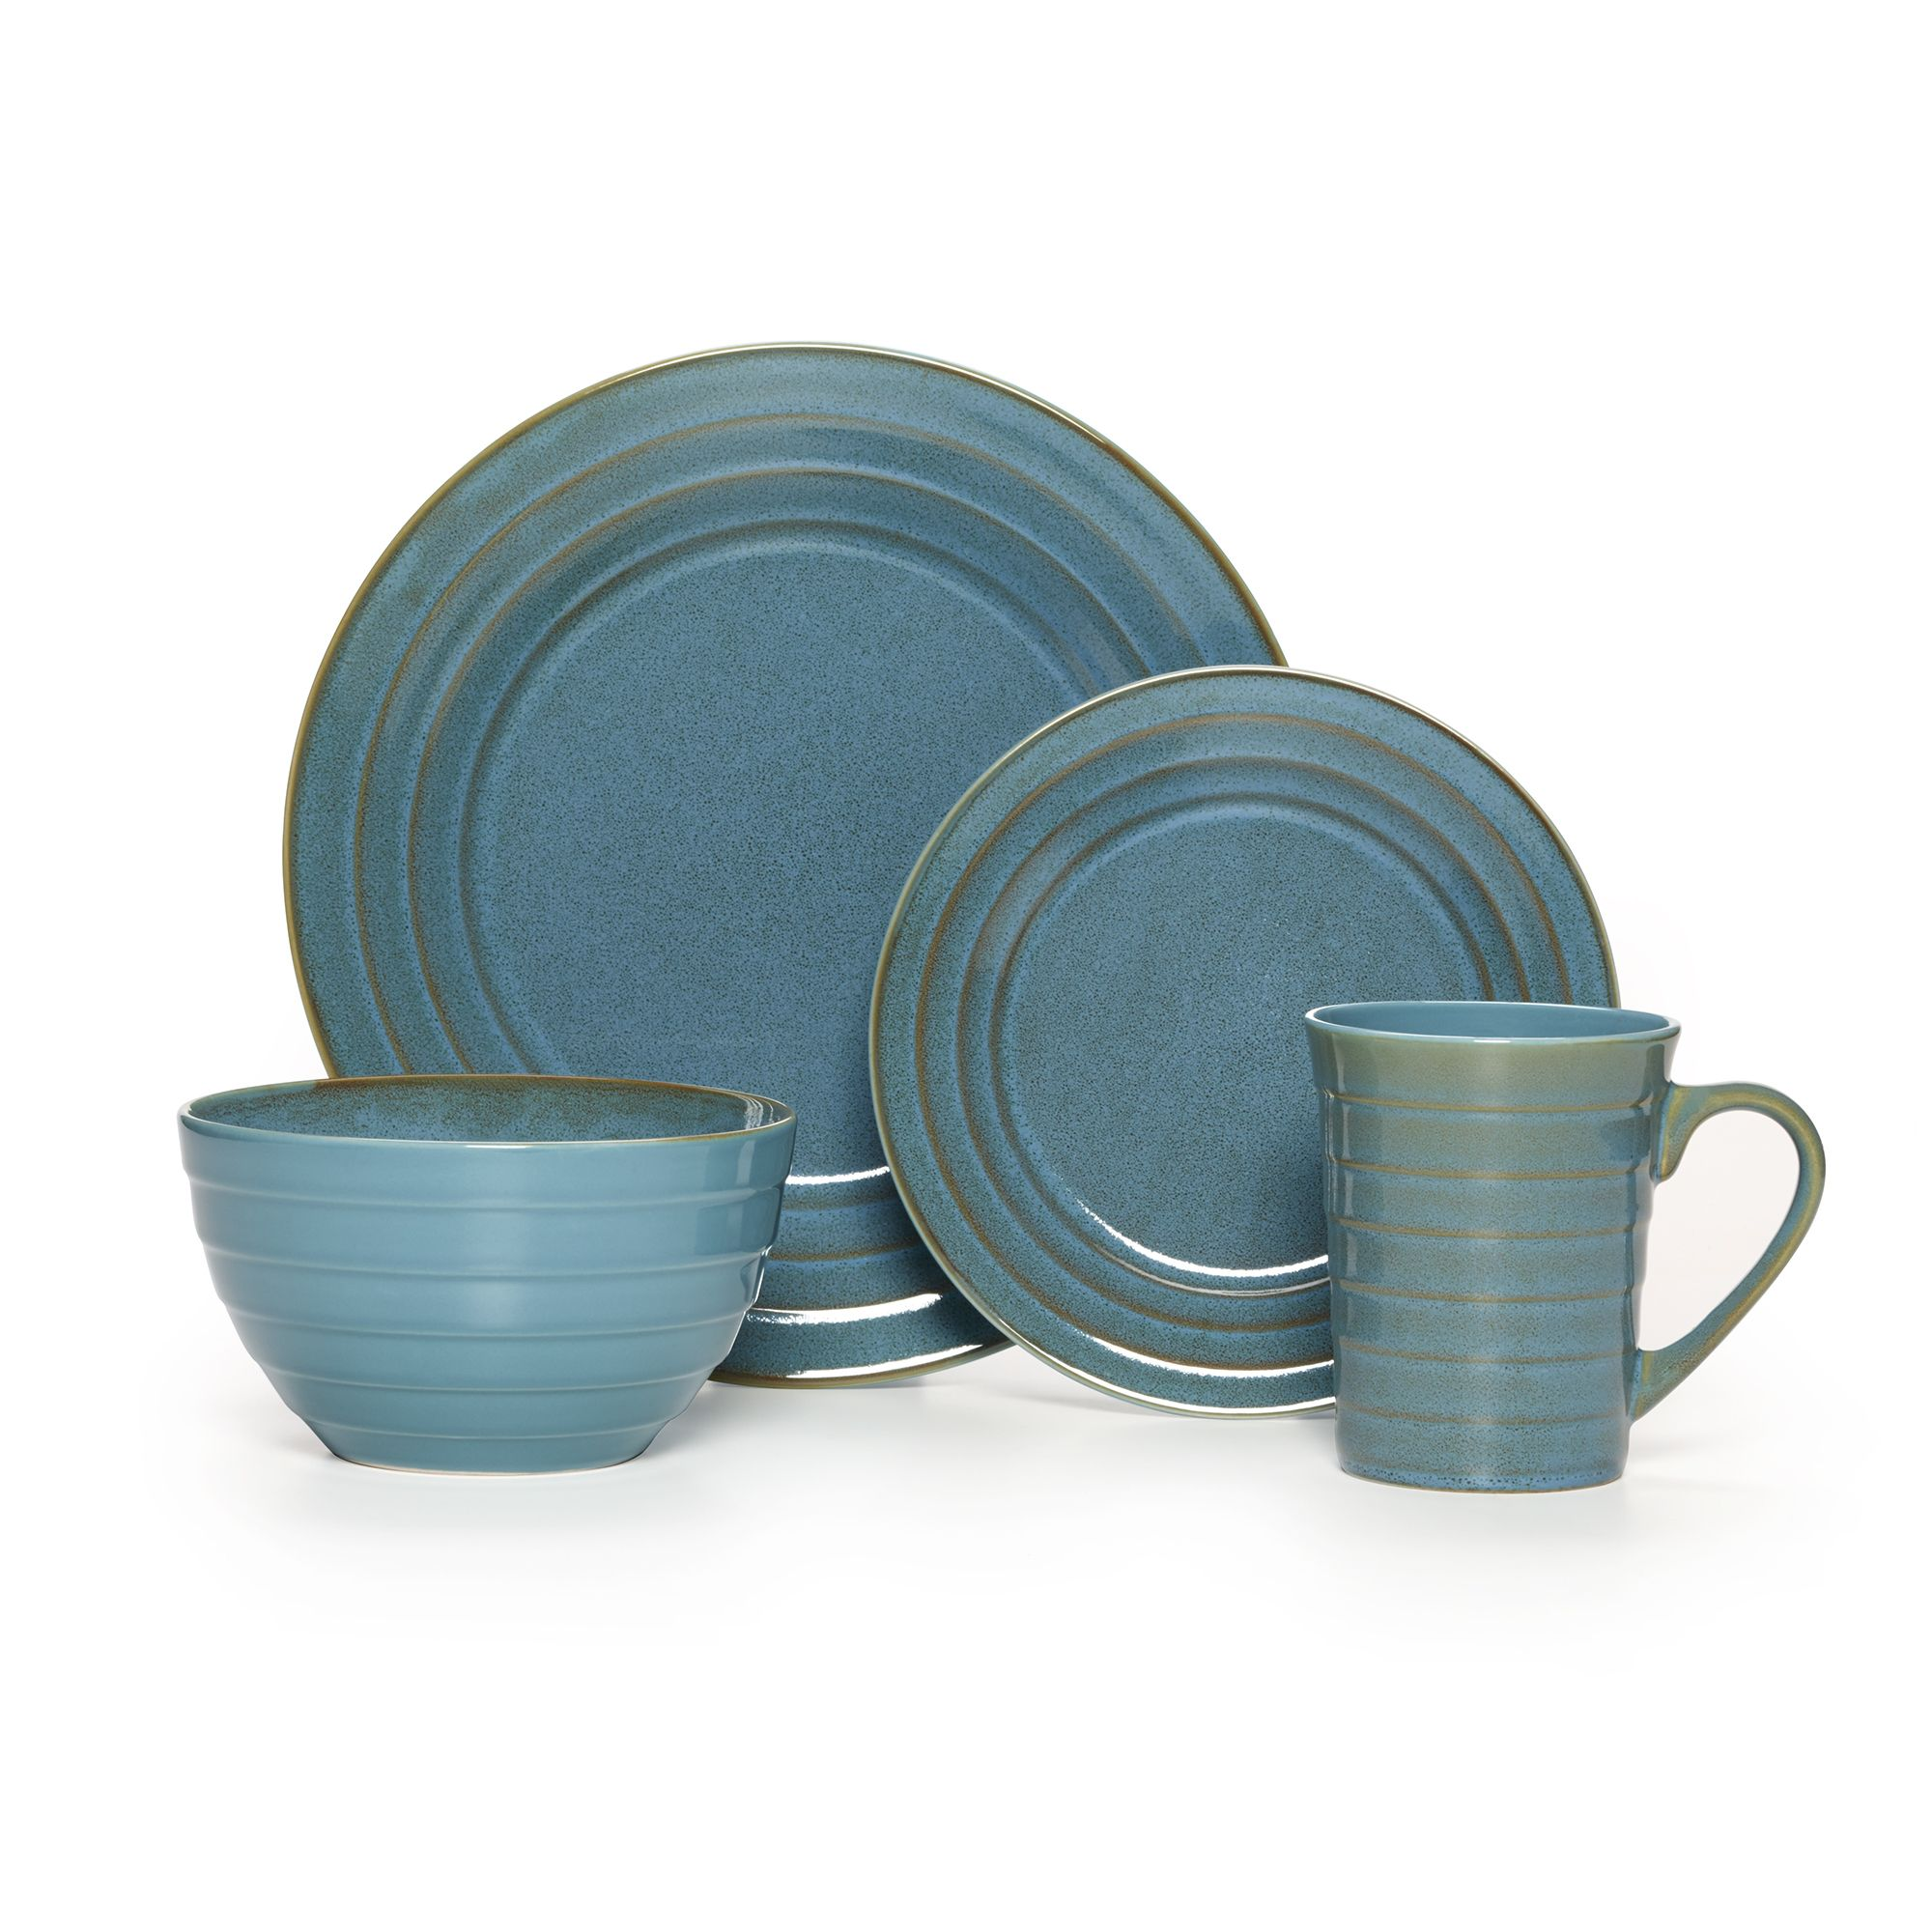 Bring cool refreshing color to the table with the beautiful Athena dinnerware set. Crafted with durable dishwasher-safe stoneware this sturdy 16-piece ...  sc 1 st  Pinterest & Bring cool refreshing color to the table with the beautiful Athena ...